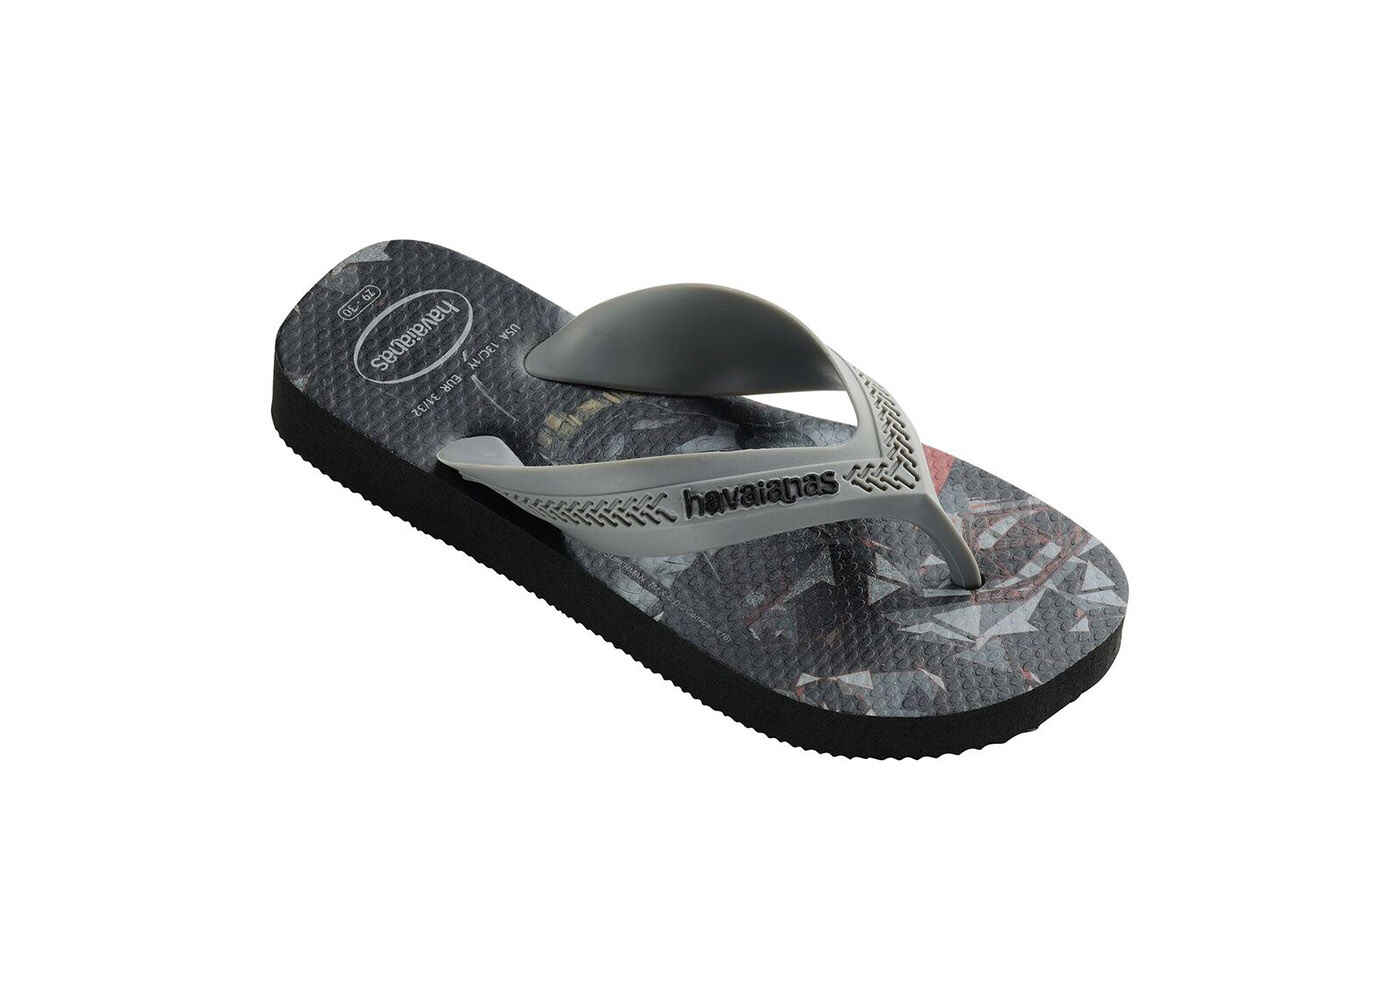 31f77e7e8 HAVAIANAS KIDS MAX HEROES JANDAL - Footwear-Youth Jandals   Sequence Surf  Shop - HAVIANAS S18